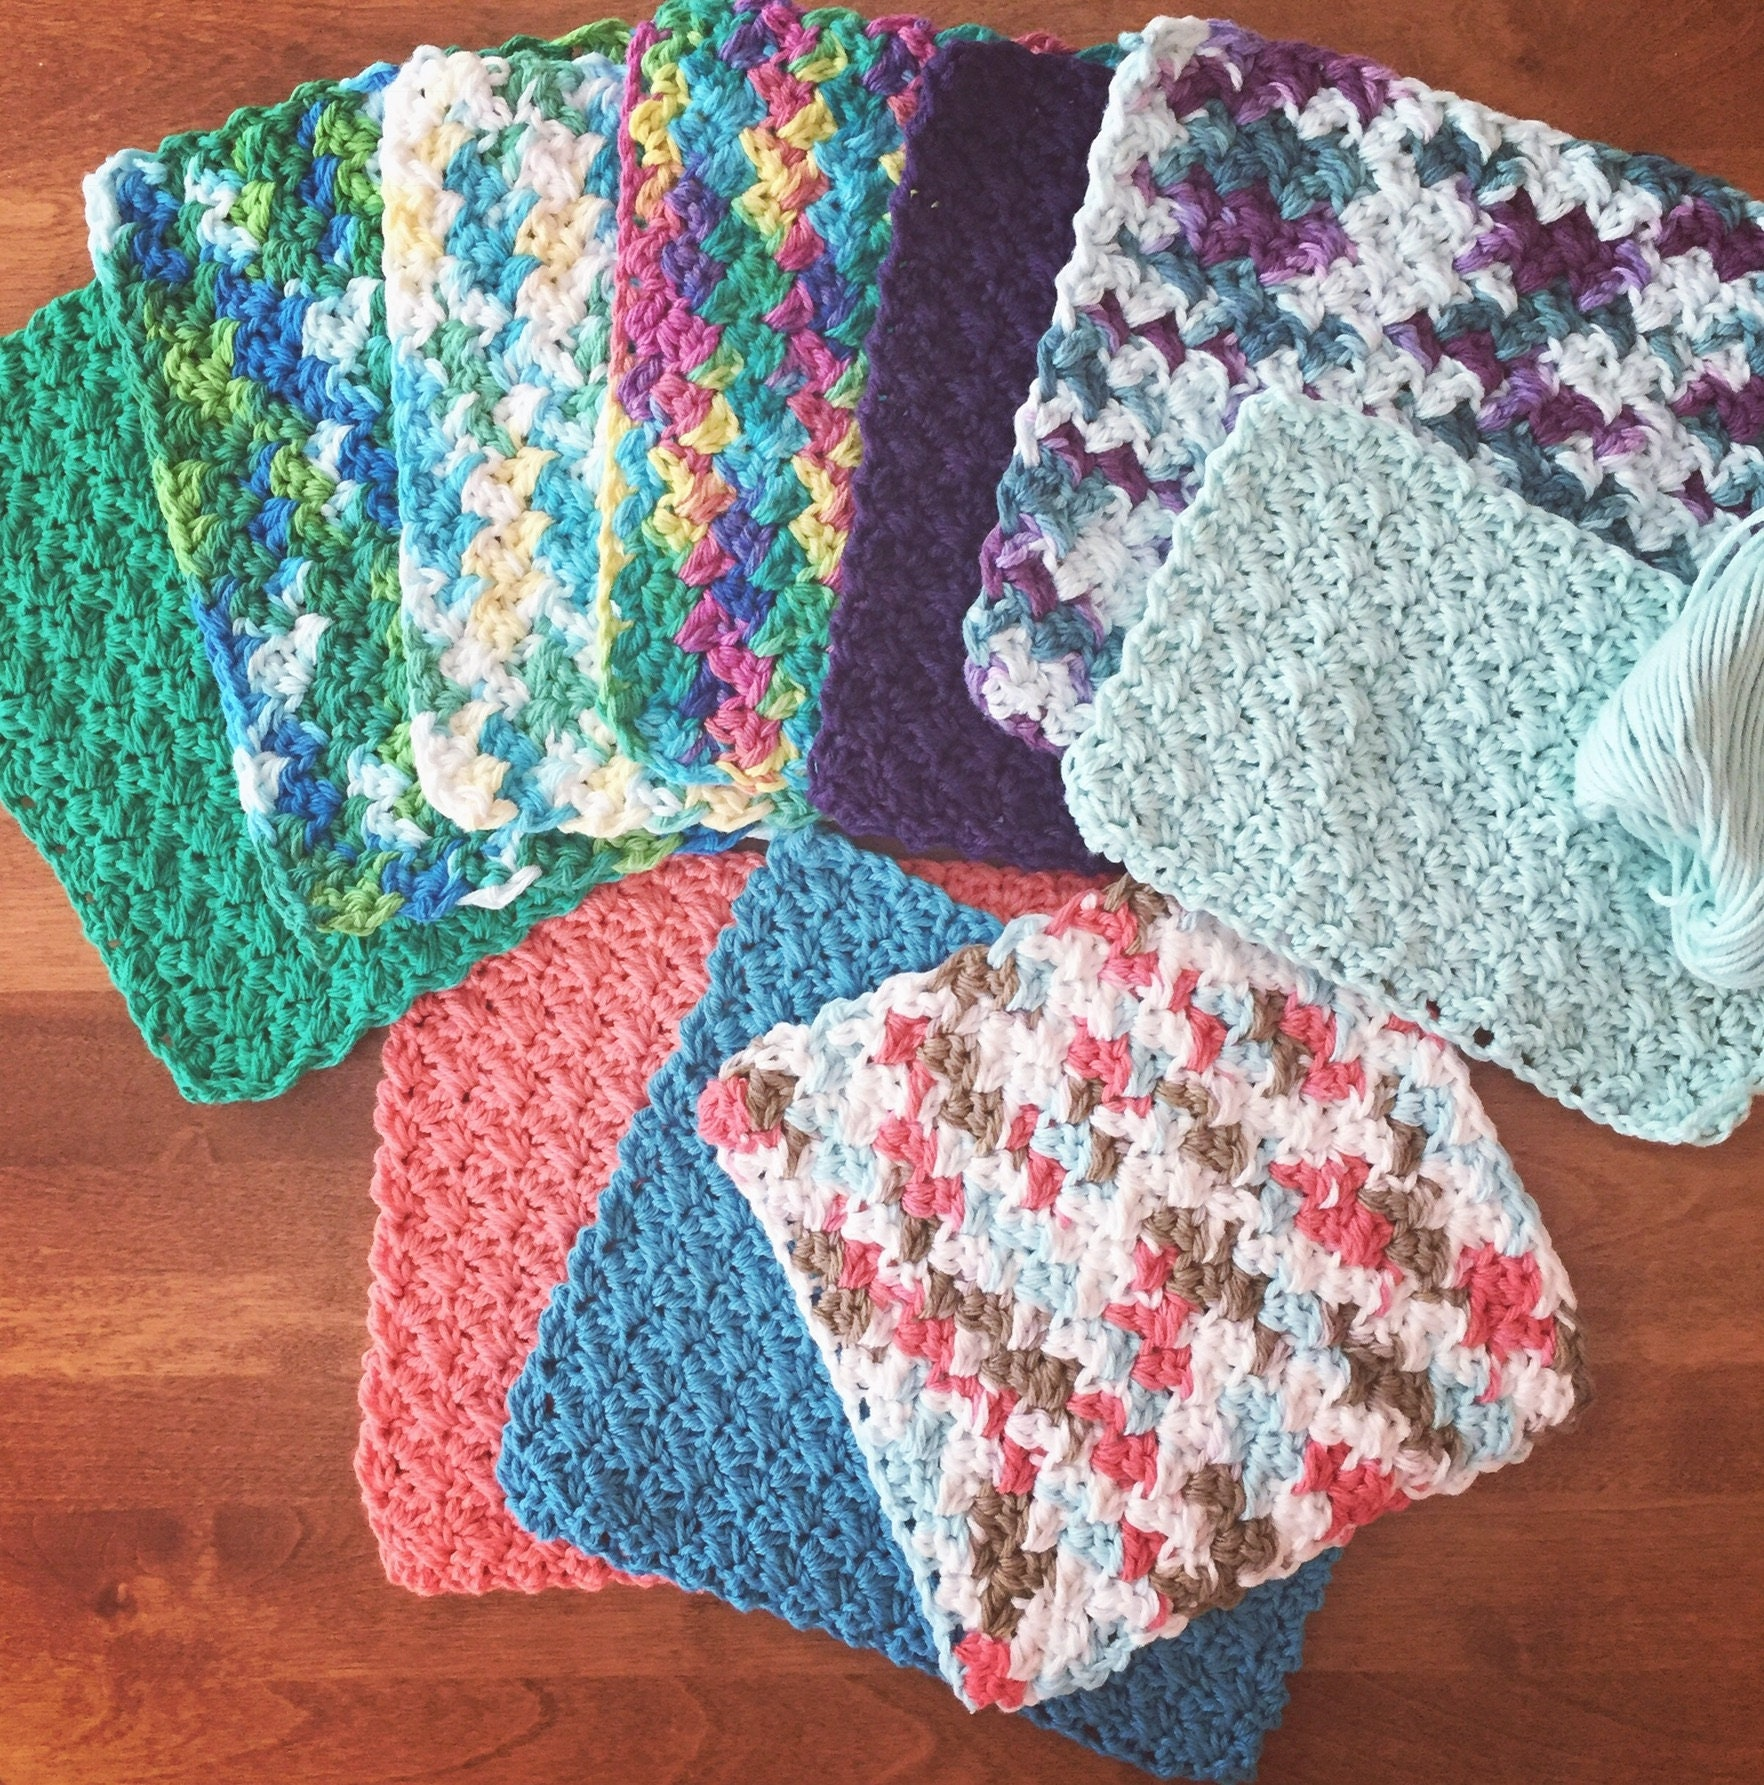 CROCHET PATTERN SET/Cotton Crochet/Crochet Dishcloth/Crochet ...